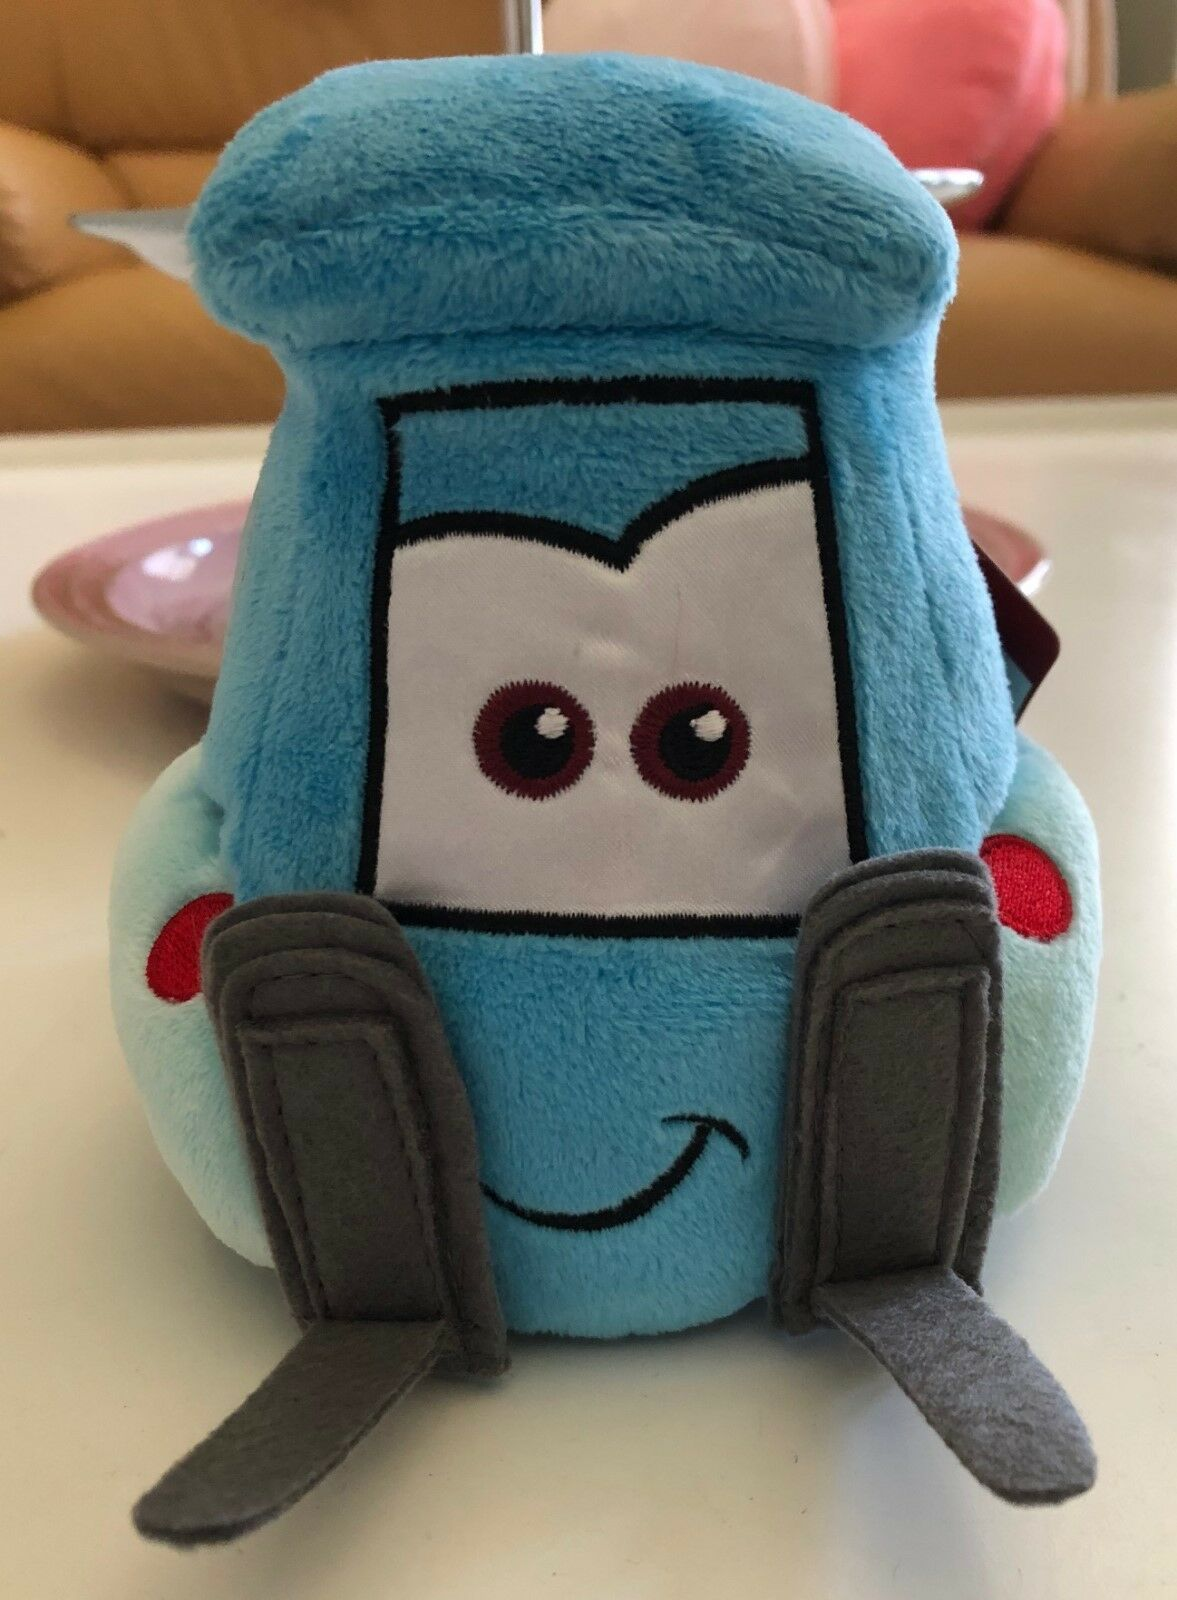 Disney Pixar Cars Guido Plush Toy Brand New with Tag! So Cut